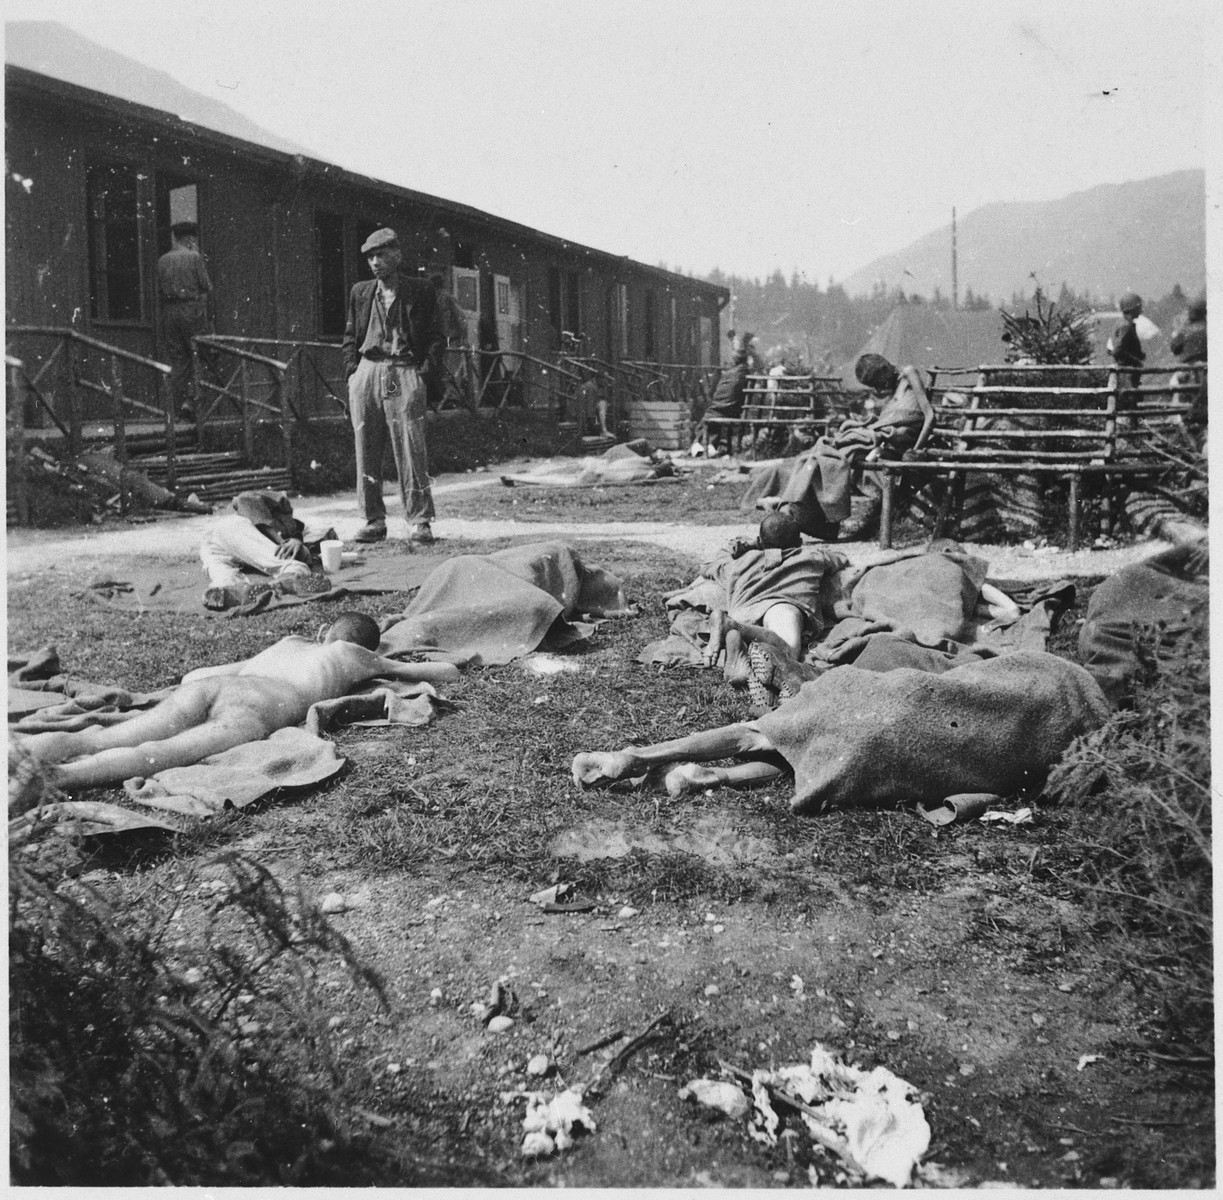 Survivors lie outside among the dead at the newly liberated Ebensee concentration camp.